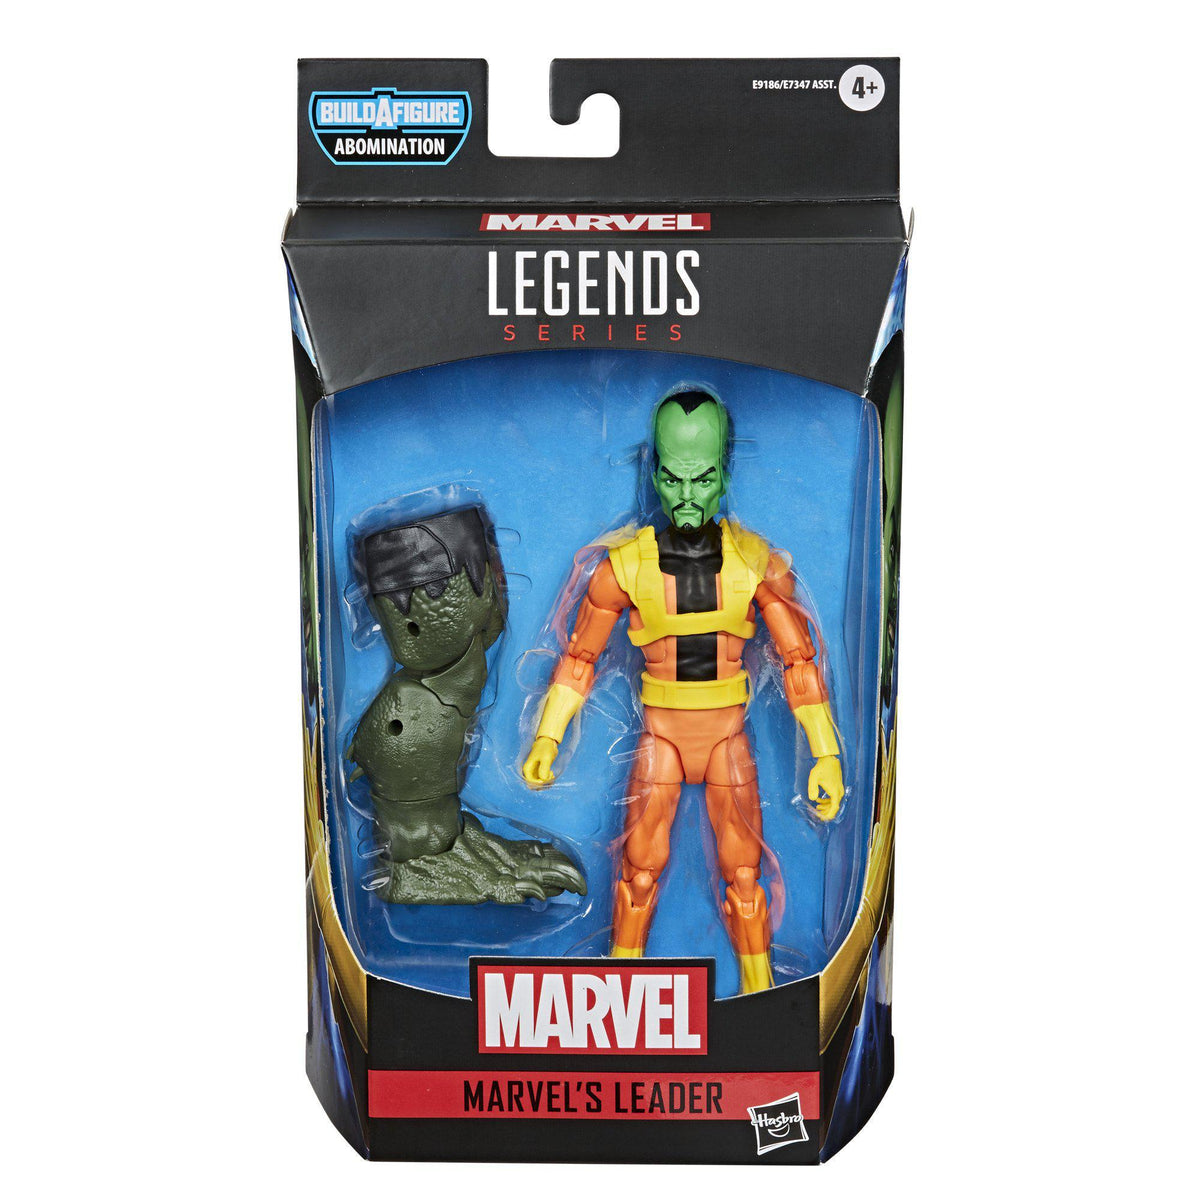 AVENGERS LEGENDS GAMERVERSE 6-INCH ACTION FIGURE - MARVEL'S LEADER